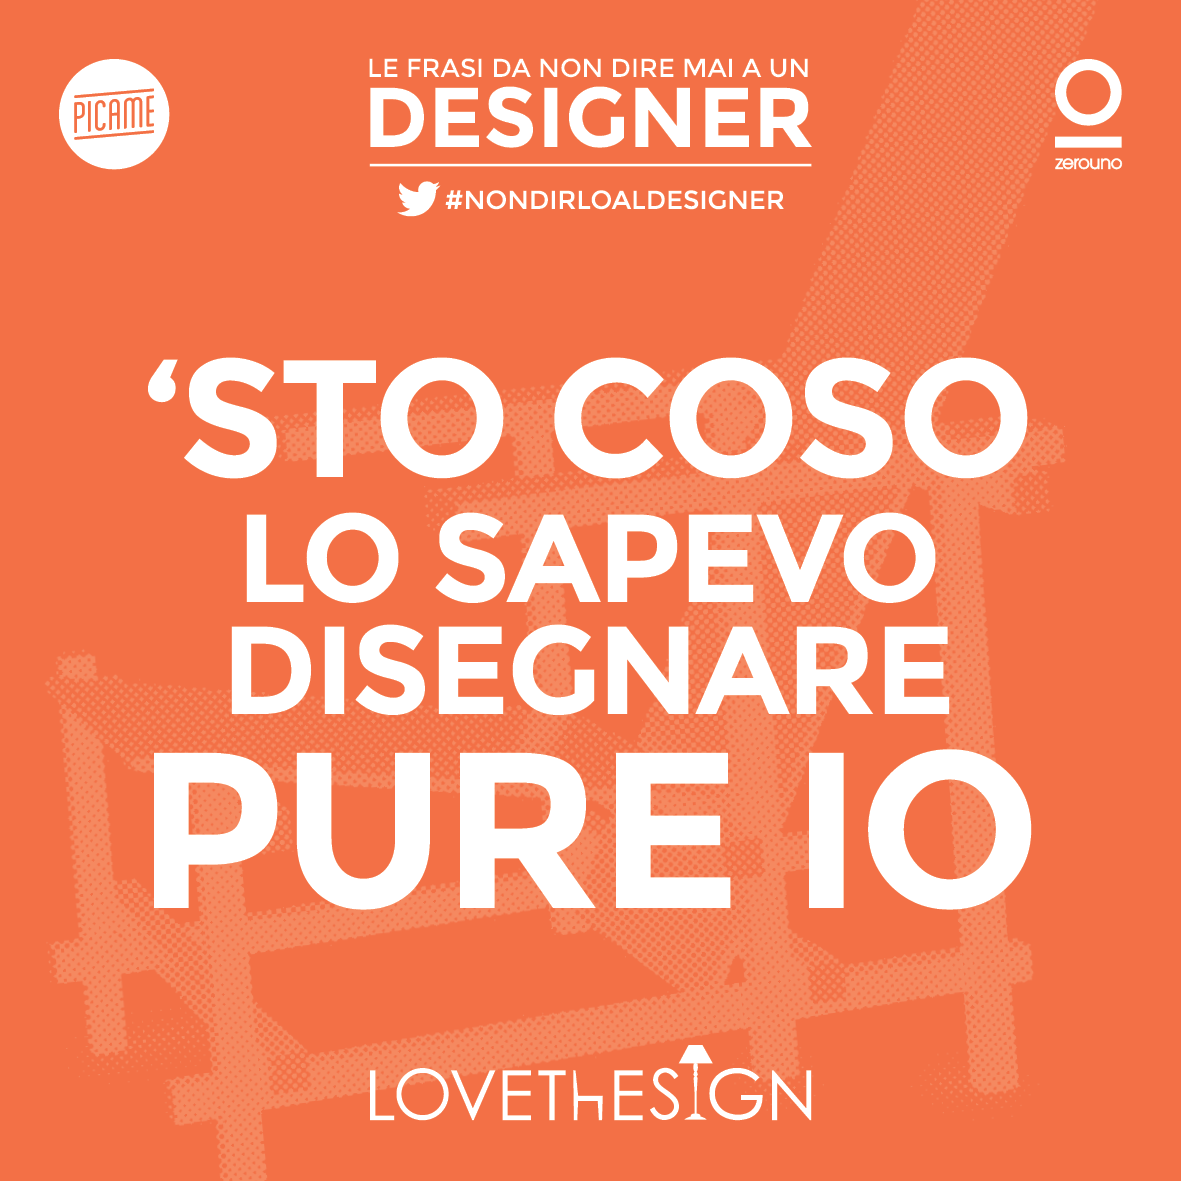 NonDirloalDesigner-Picame-Lovethesign-3